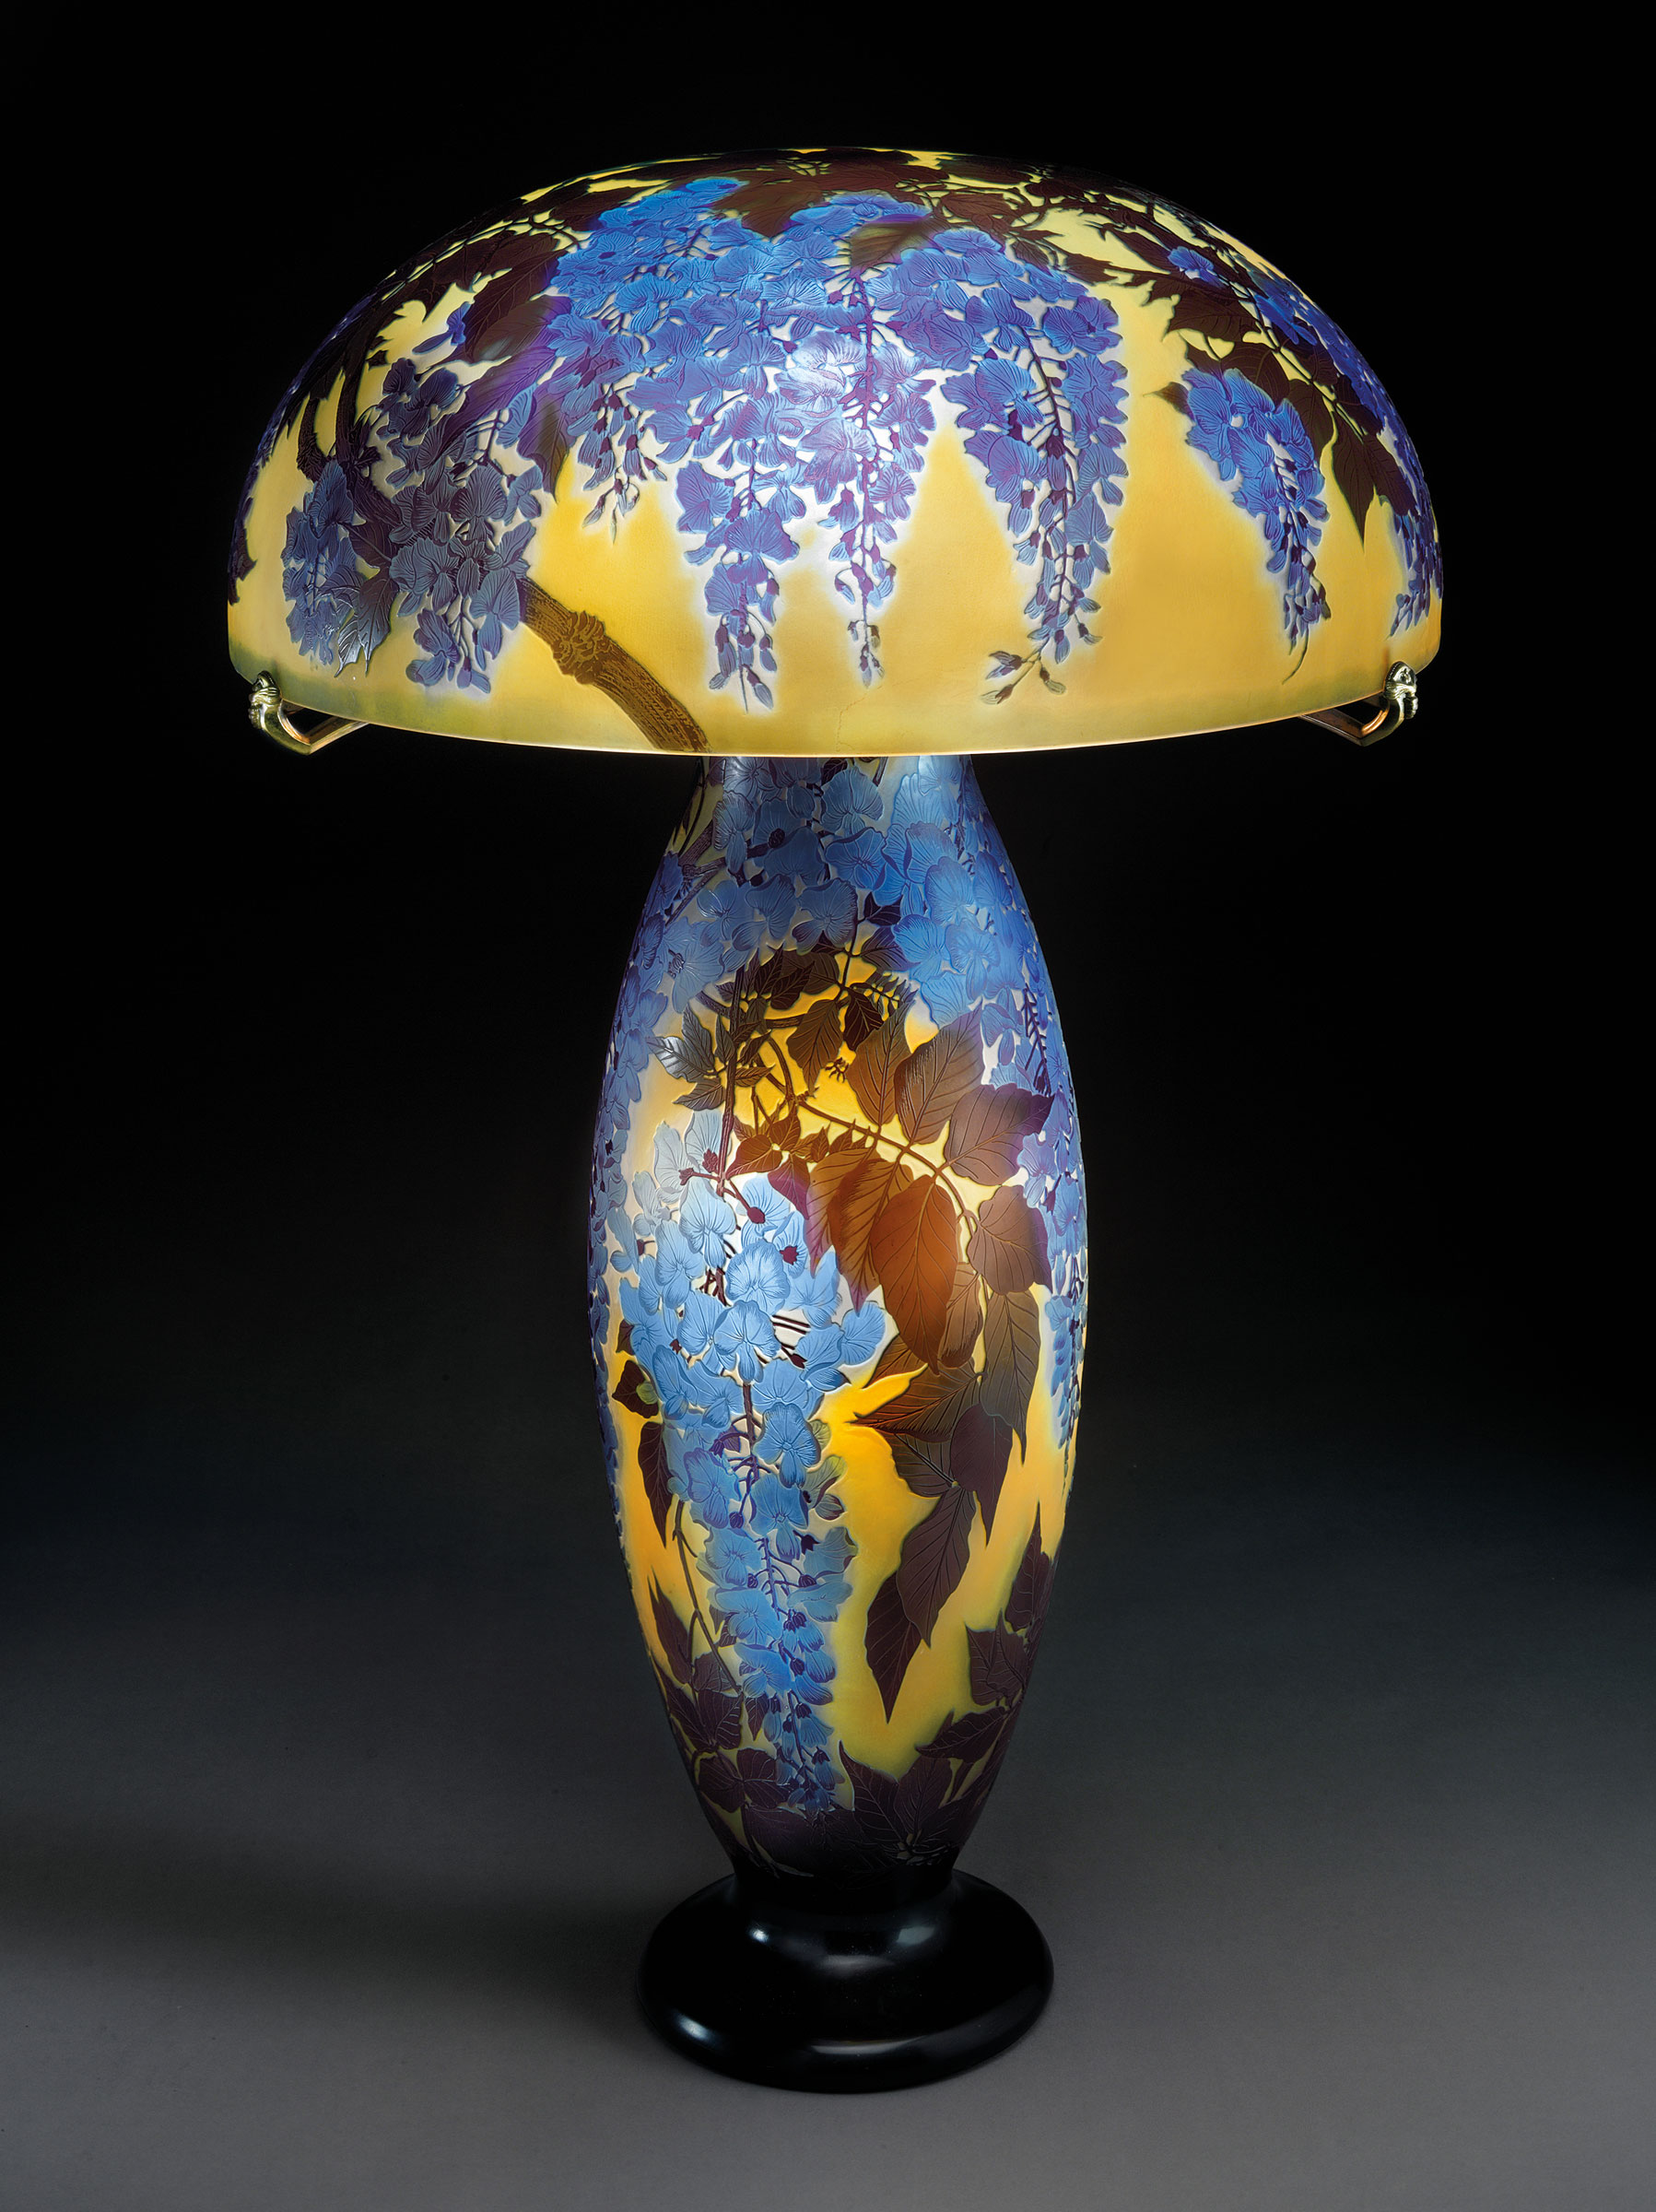 British Analytical Beautiful Glass Art Deco Cheapest Price From Our Site